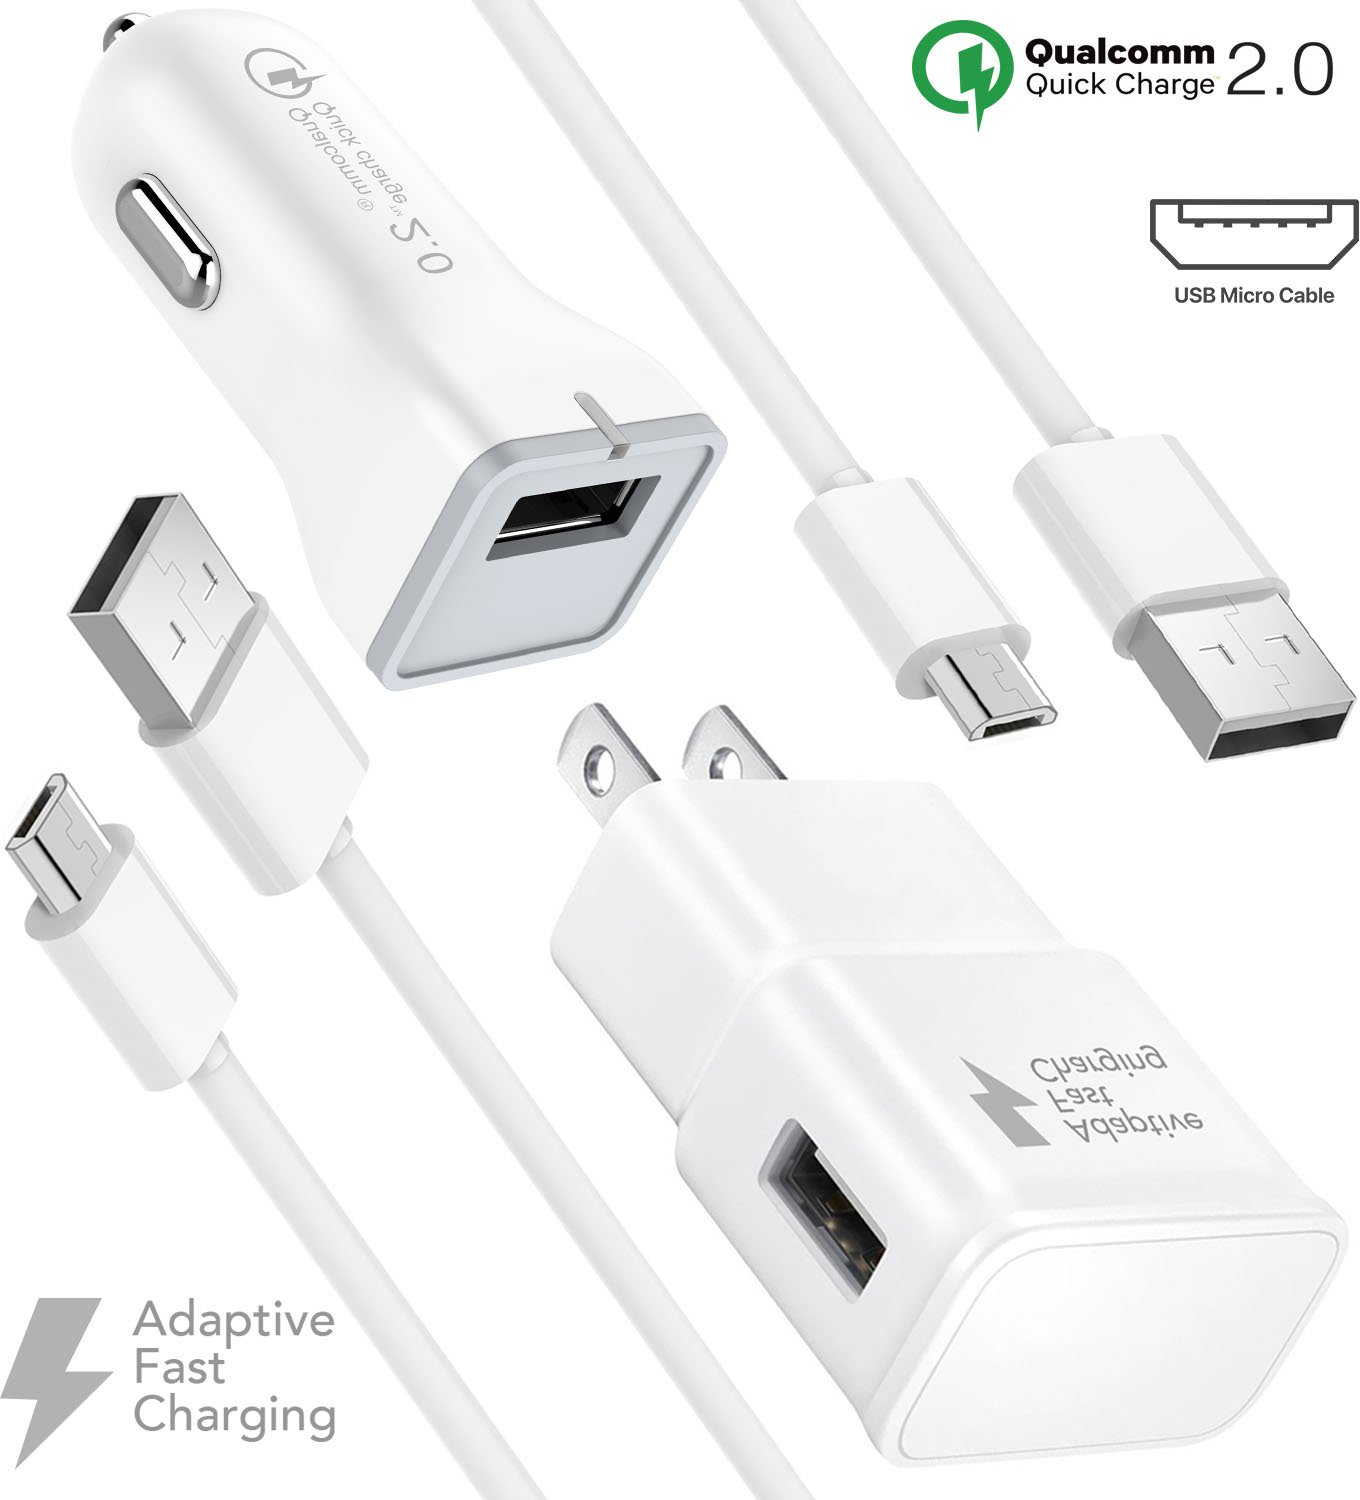 Galaxy S7 Edge Fast Charger Combo Kit {Wall Charger + Car Charger + 2 Cable} True Digital Adaptive Fast Charging uses dual voltages for up to 50% faster charging! - By Boxgear Compatible with Samsung